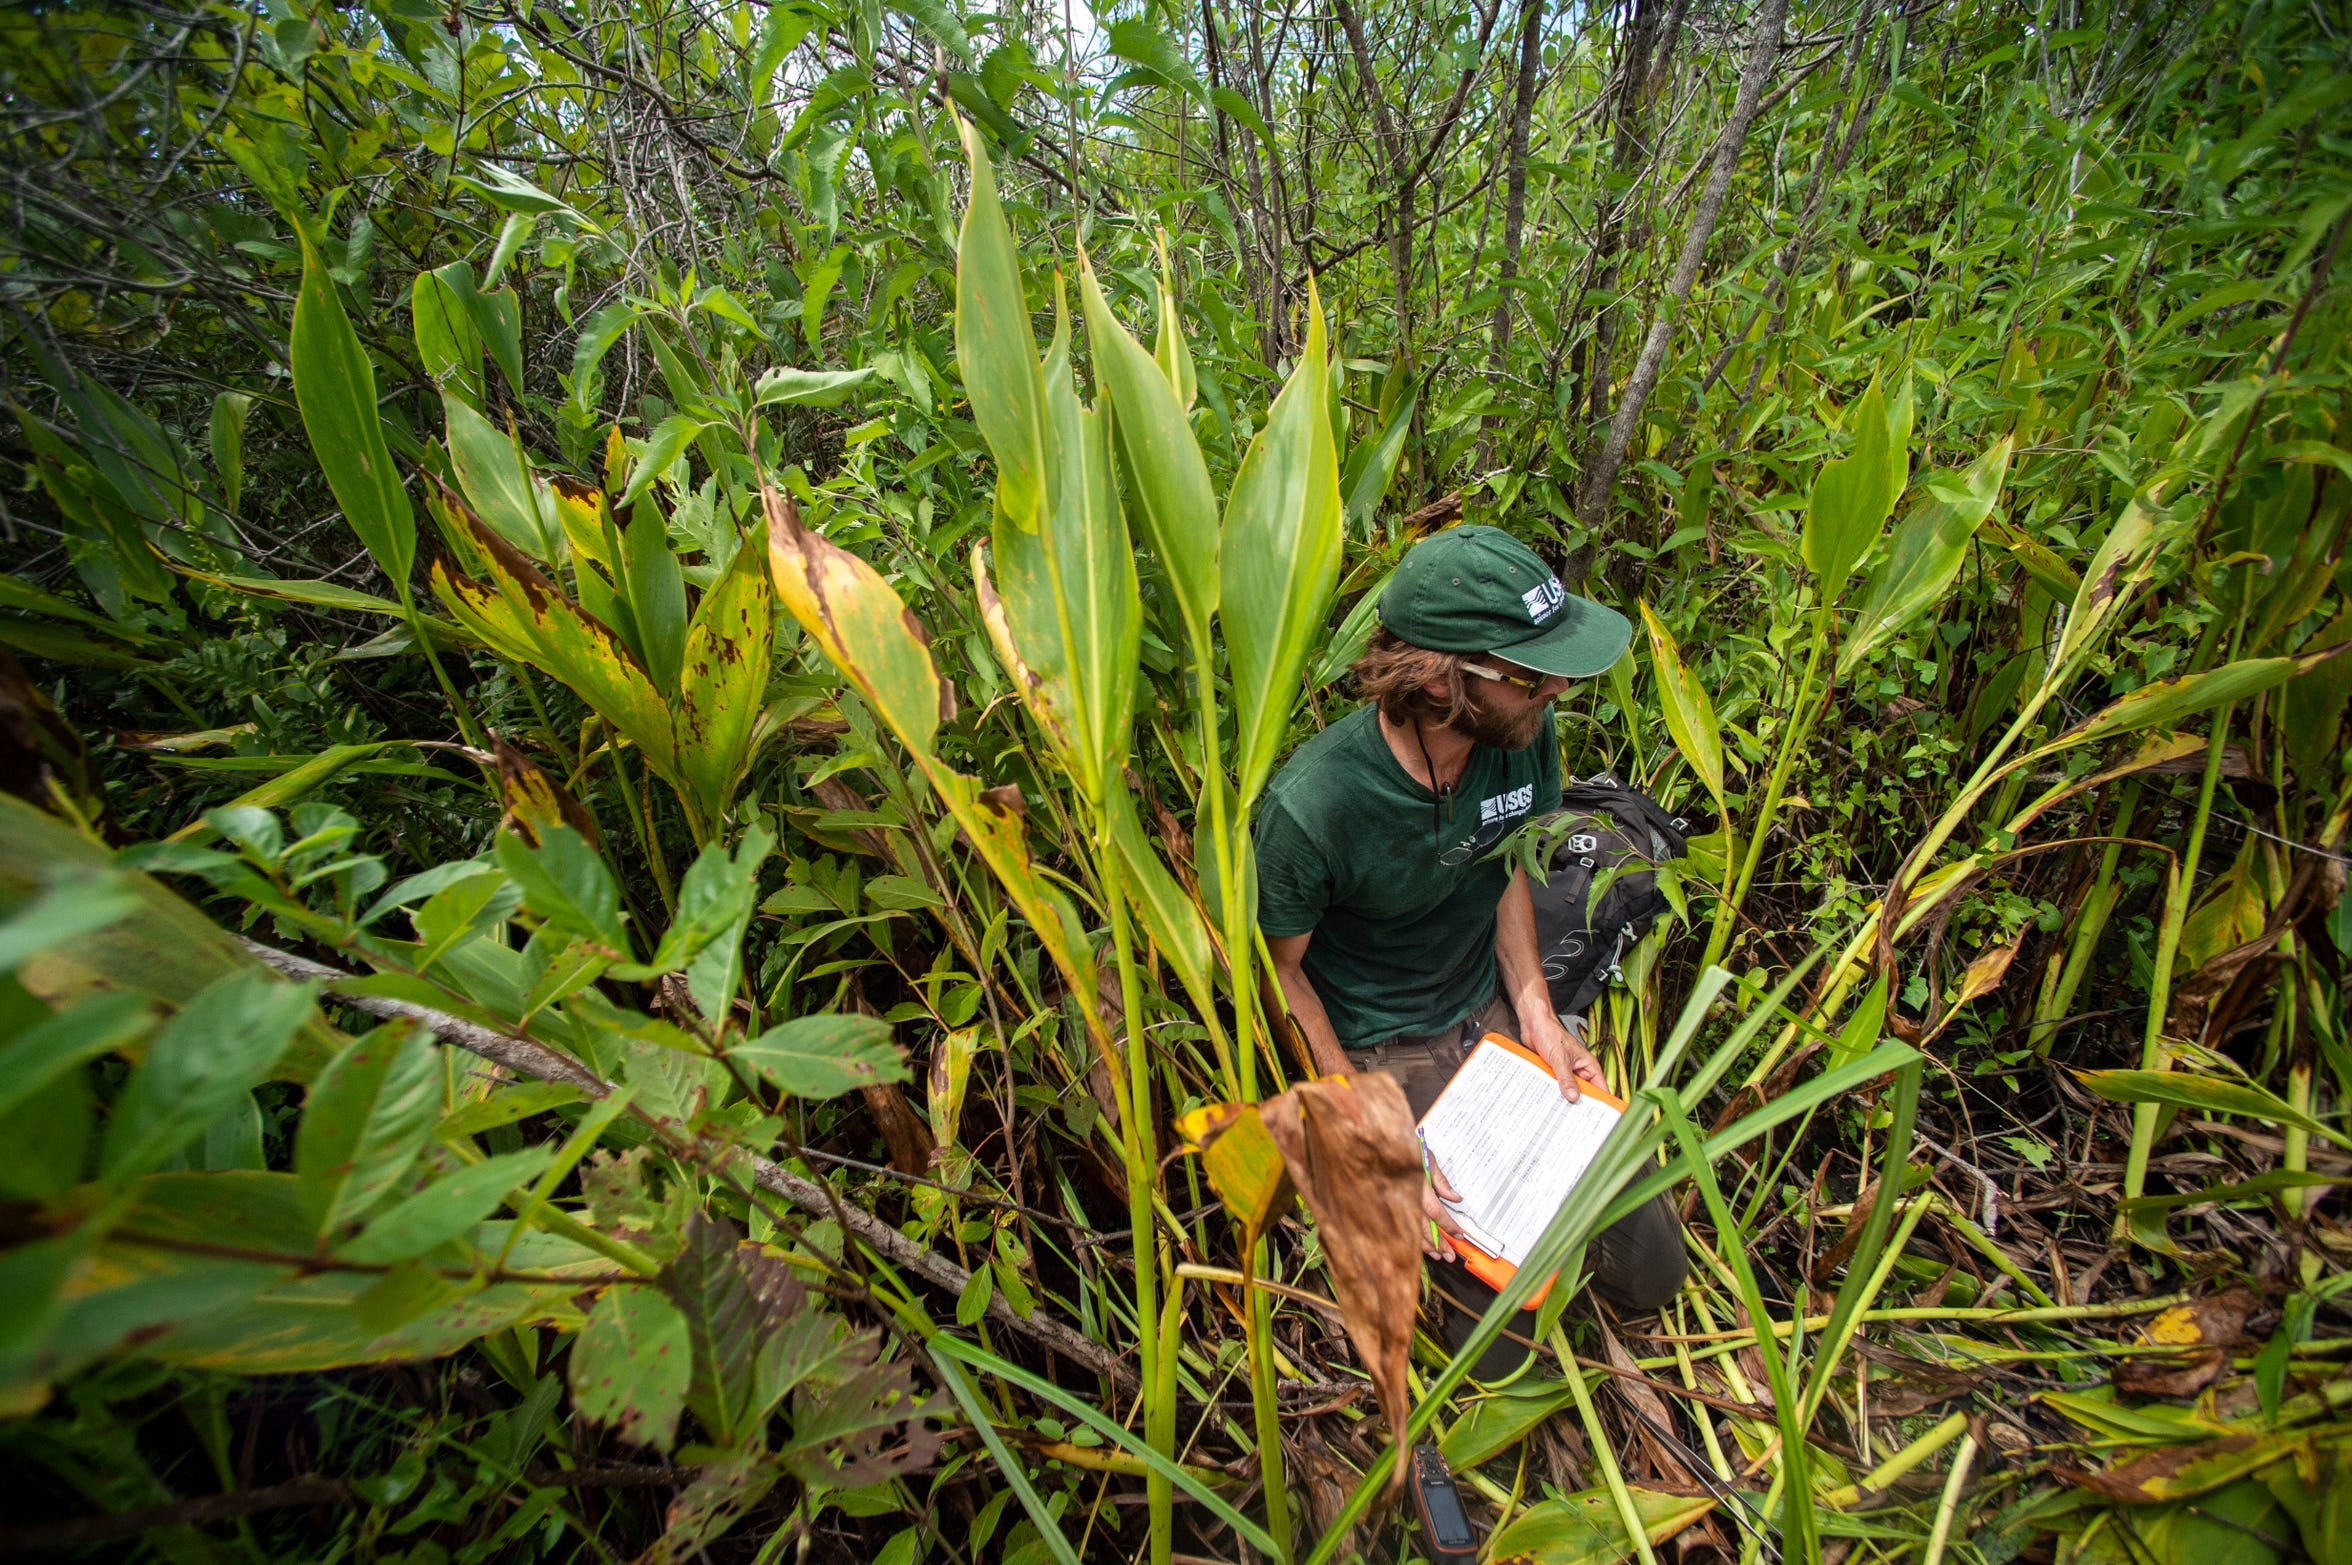 Austin Fitzgerald, biological science technician with the U.S. Geological Survey, documents data from field research conducted on Burmese python Charlie 5 on Thursday, June 6, 2019, at Big Cypress National Preserve.